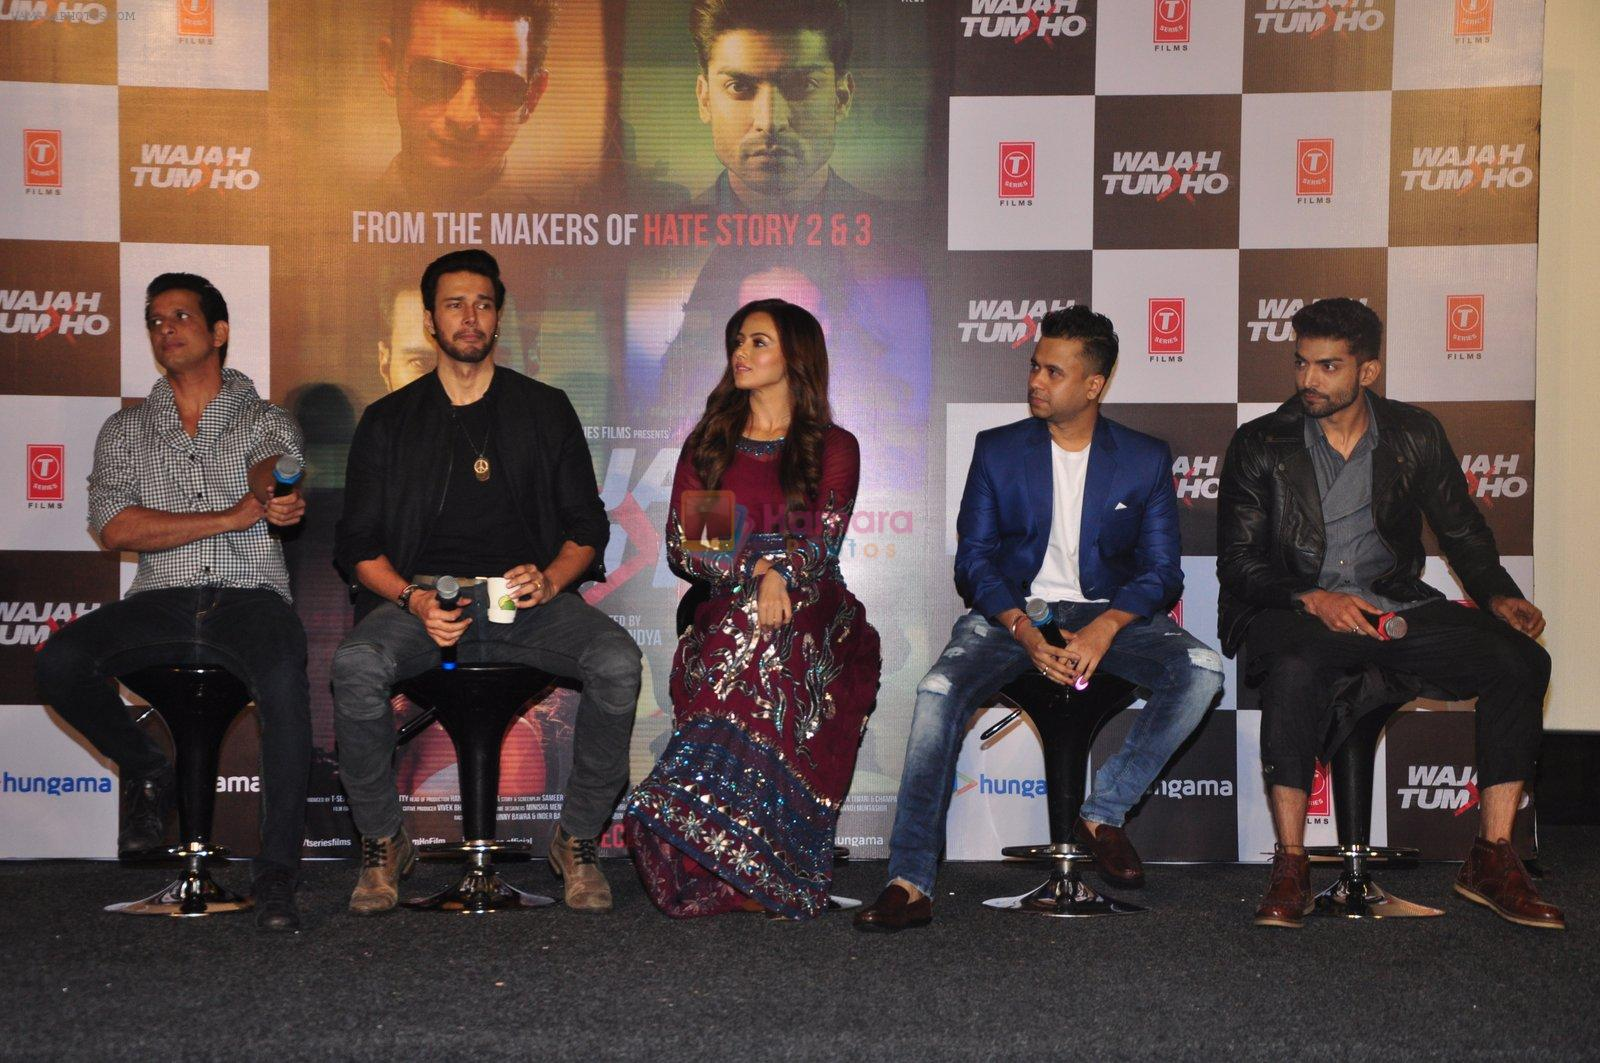 Sana Khan, Sharman Joshi, Rajneesh Duggal, Vishal Pandya, Gurmeet Choudhary at Wajah Tum Ho film event on 14th Oct 2016